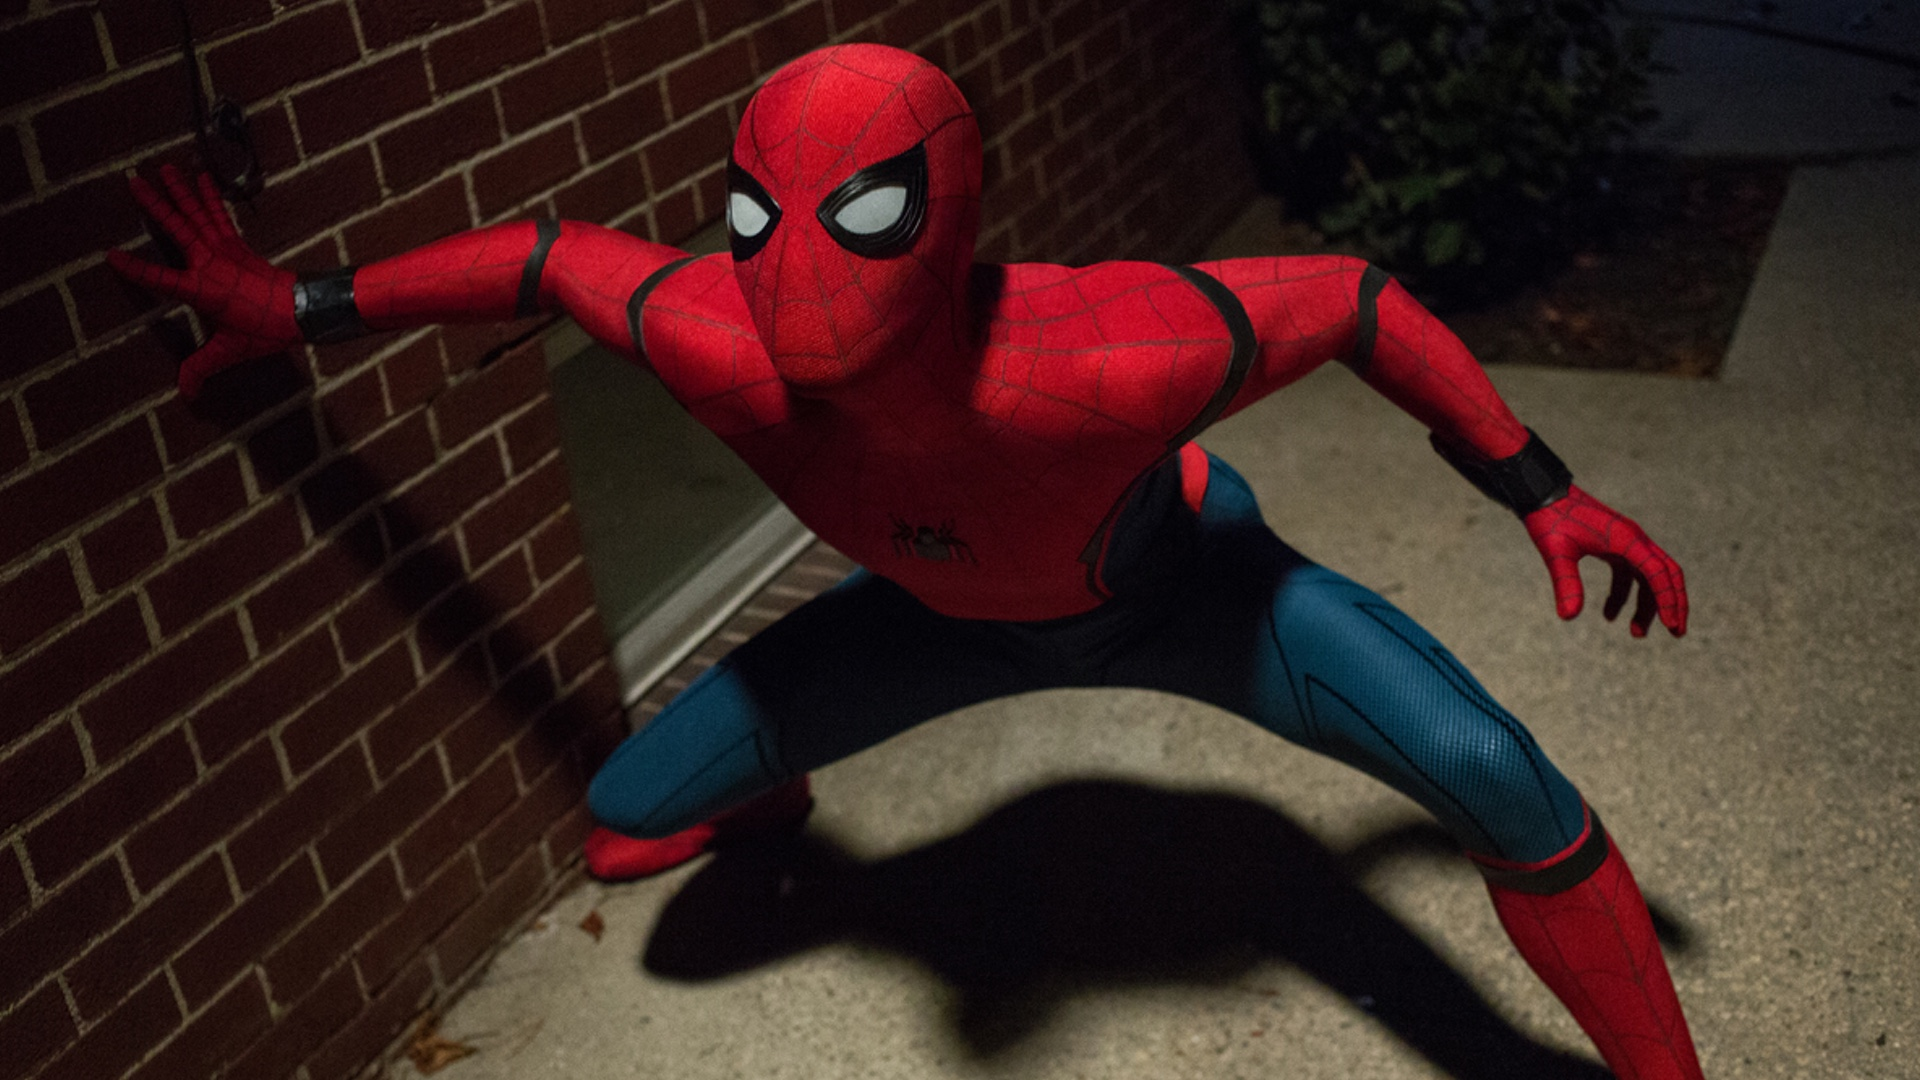 the-director-of-venom-isnt-ruling-out-a-spider-man-appearance-in-the-franchise-social.jpg